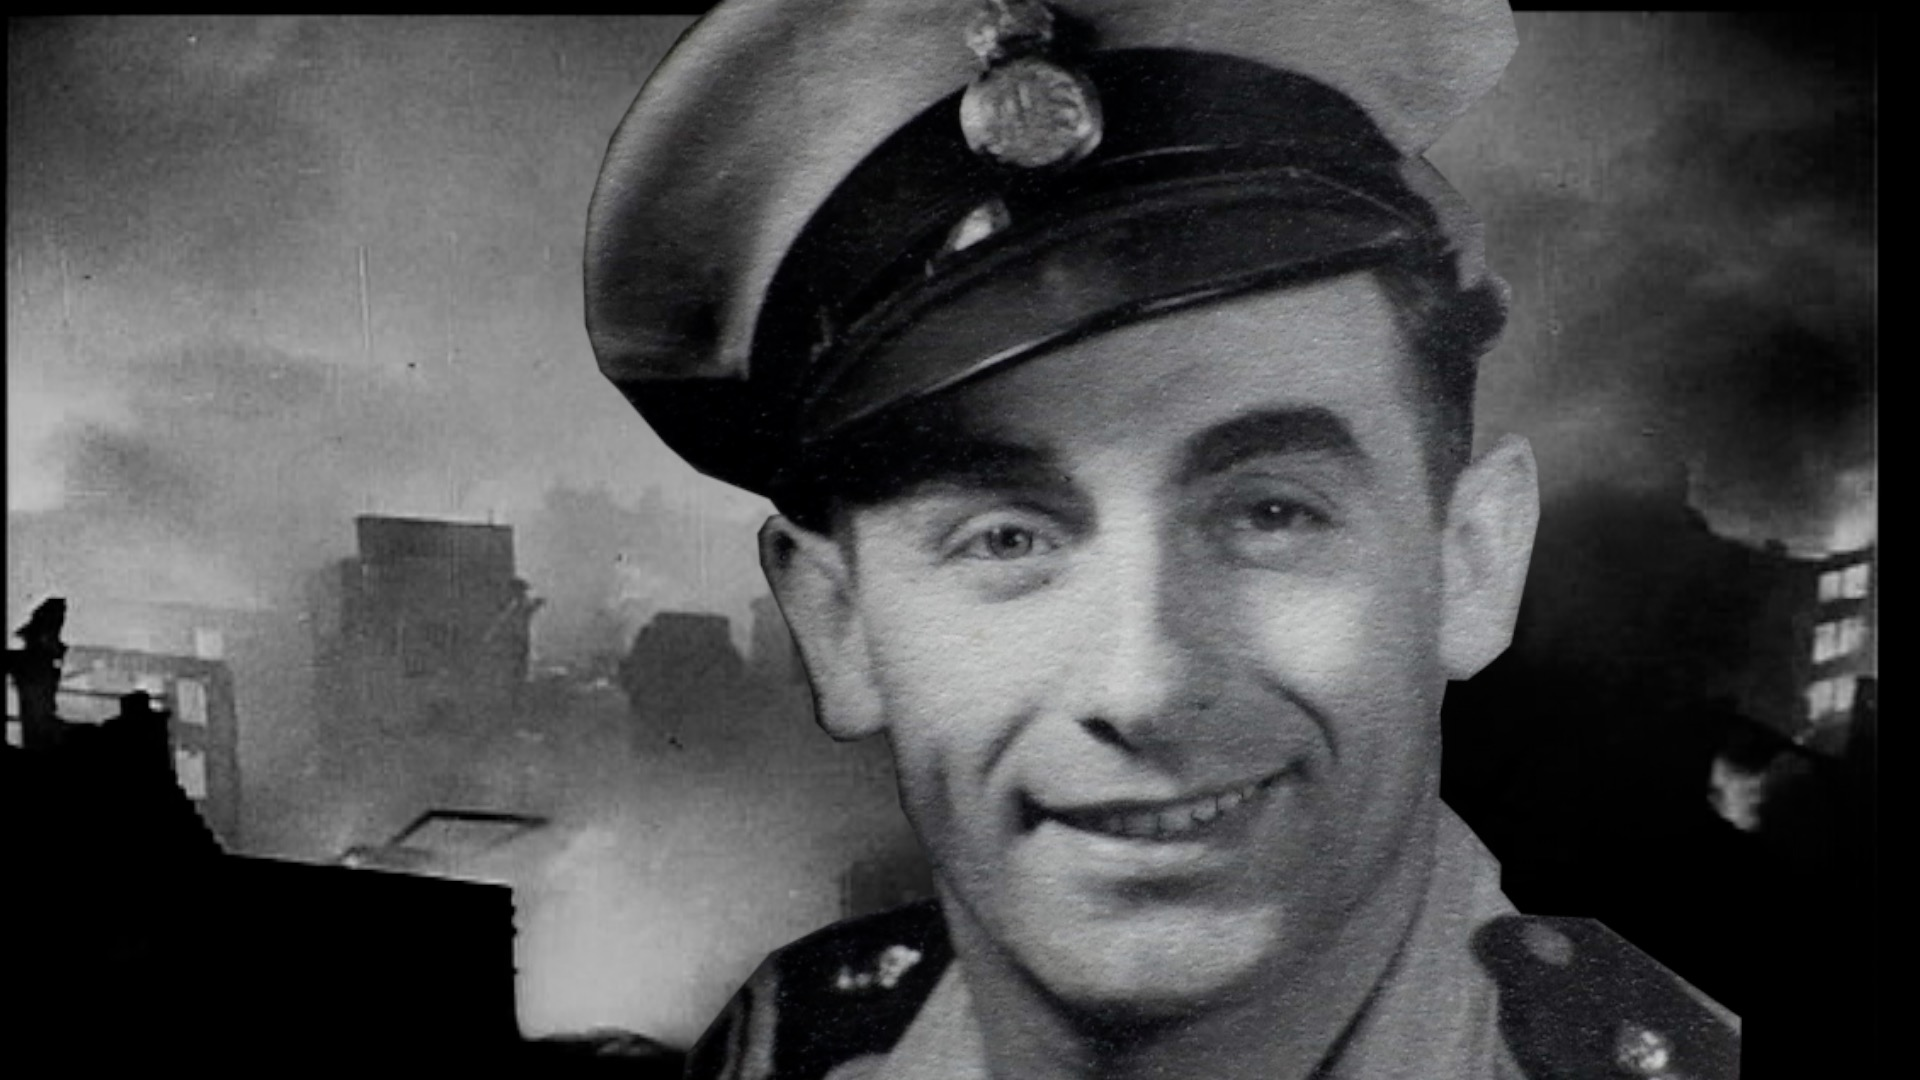 The 107-year-old who fought fires during the Blitz